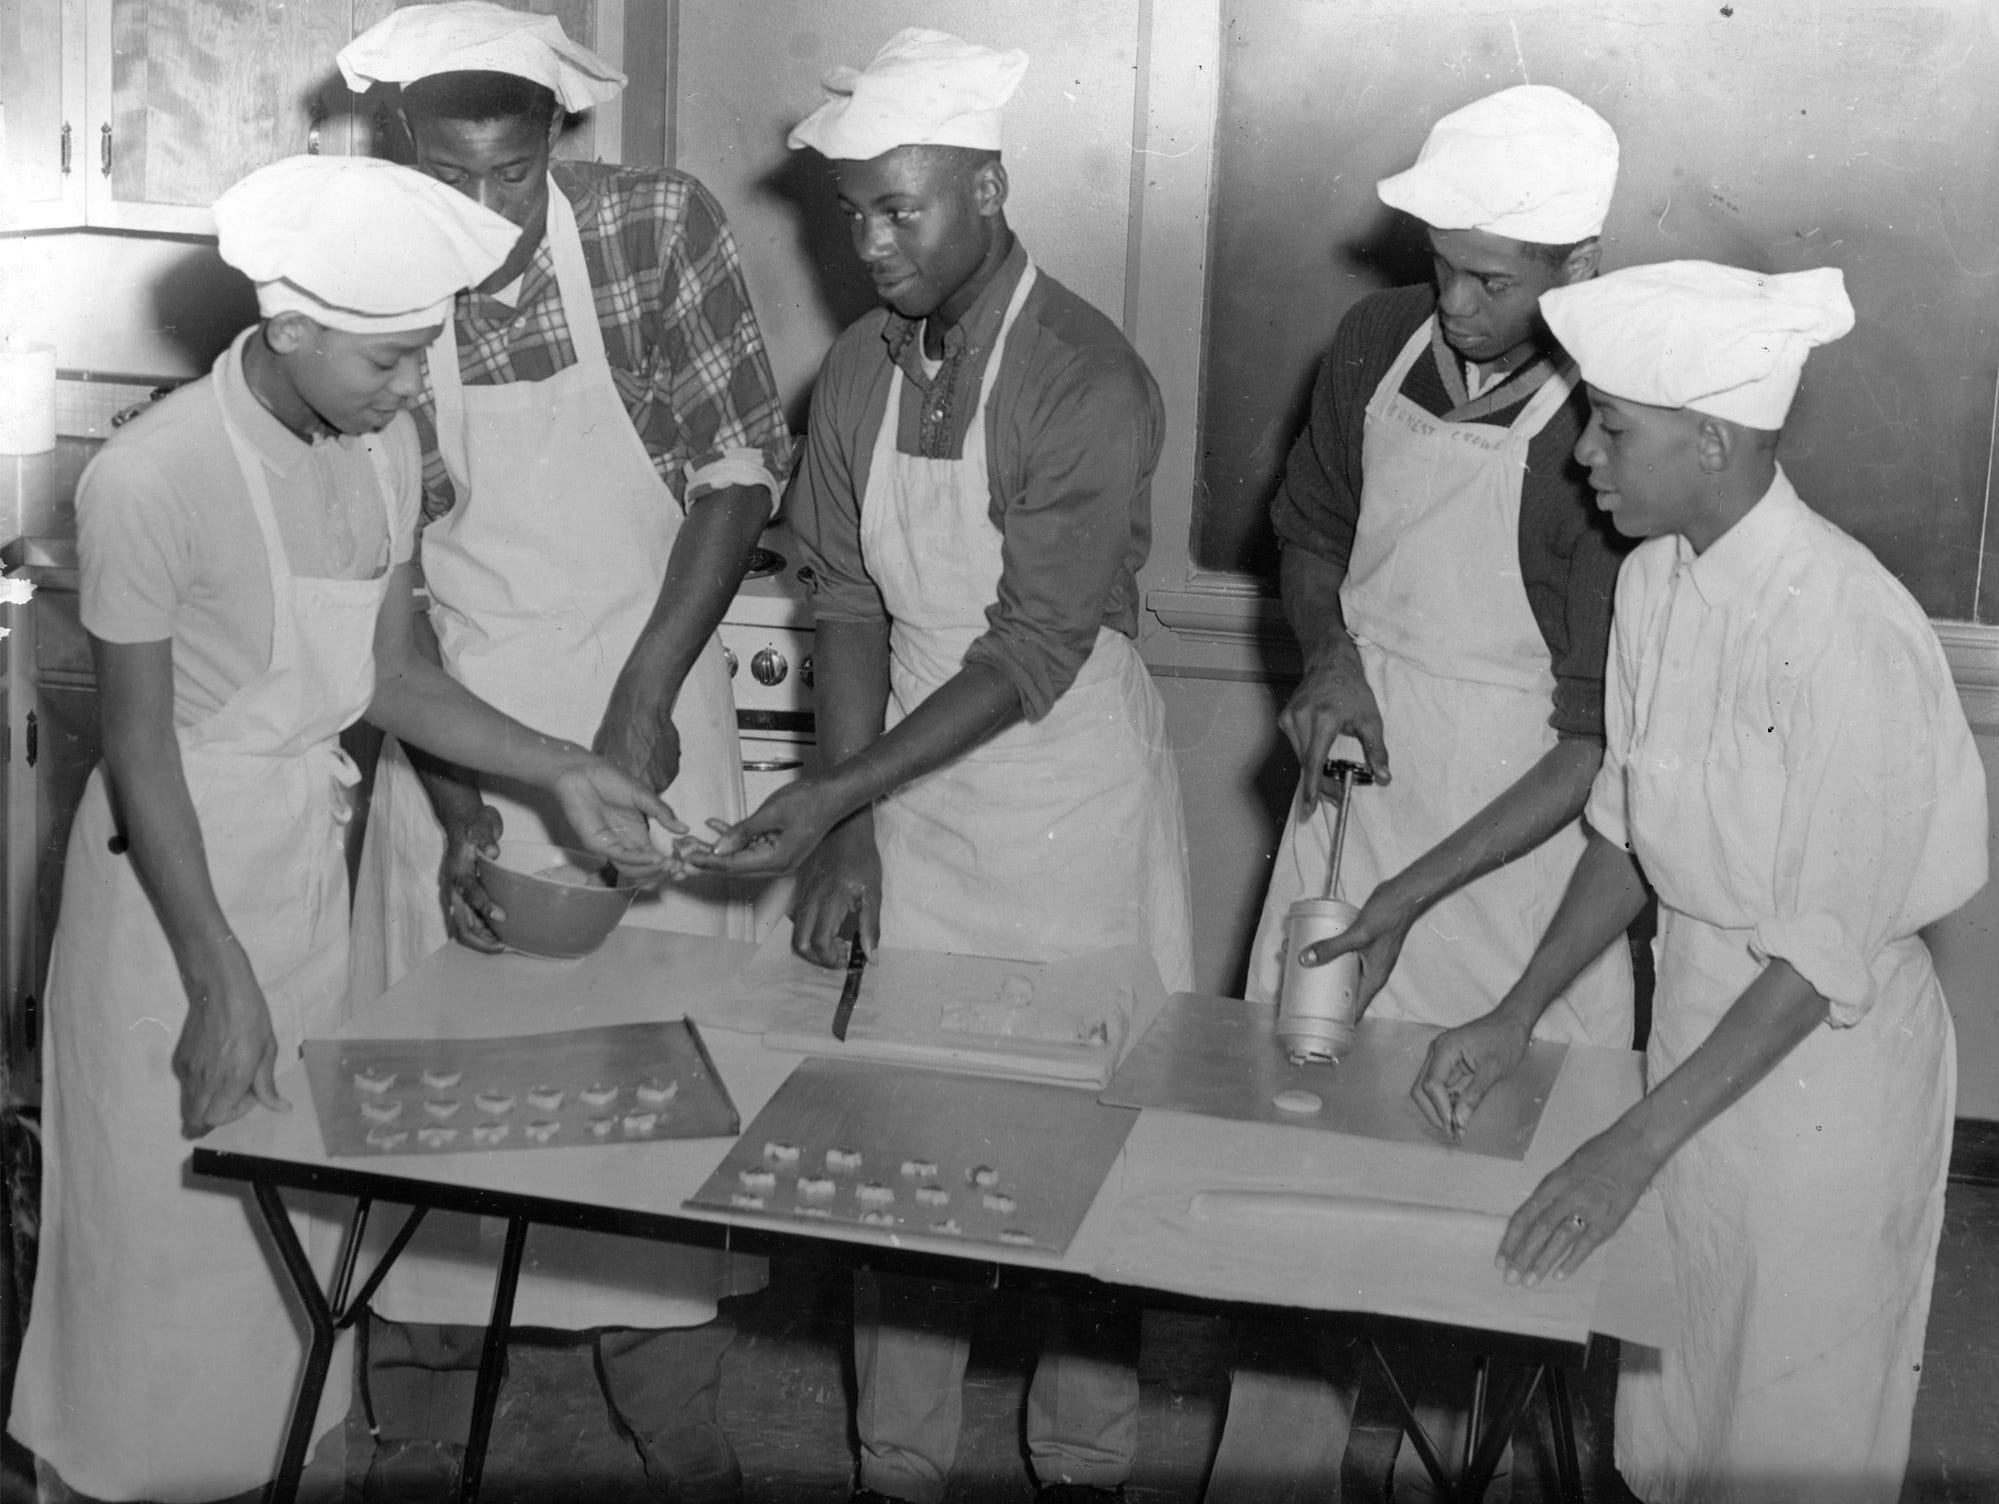 Three hundred dozen cookies were baked by members of Crispus Attucks High School's food-handling class to be distributed to hospitals at Christmas in 1960. The school's Junior Red Cross and home economics department sponsored the Christmas project. Preparing Christmas bell and tree-shaped cookies were (from left): Robert Sharp, Carl Middlebrook, Henry Green, Karl Brady and Edward Torrence. Food classes taught both young men and women how to cook and were considered a significant part of the curriculum.